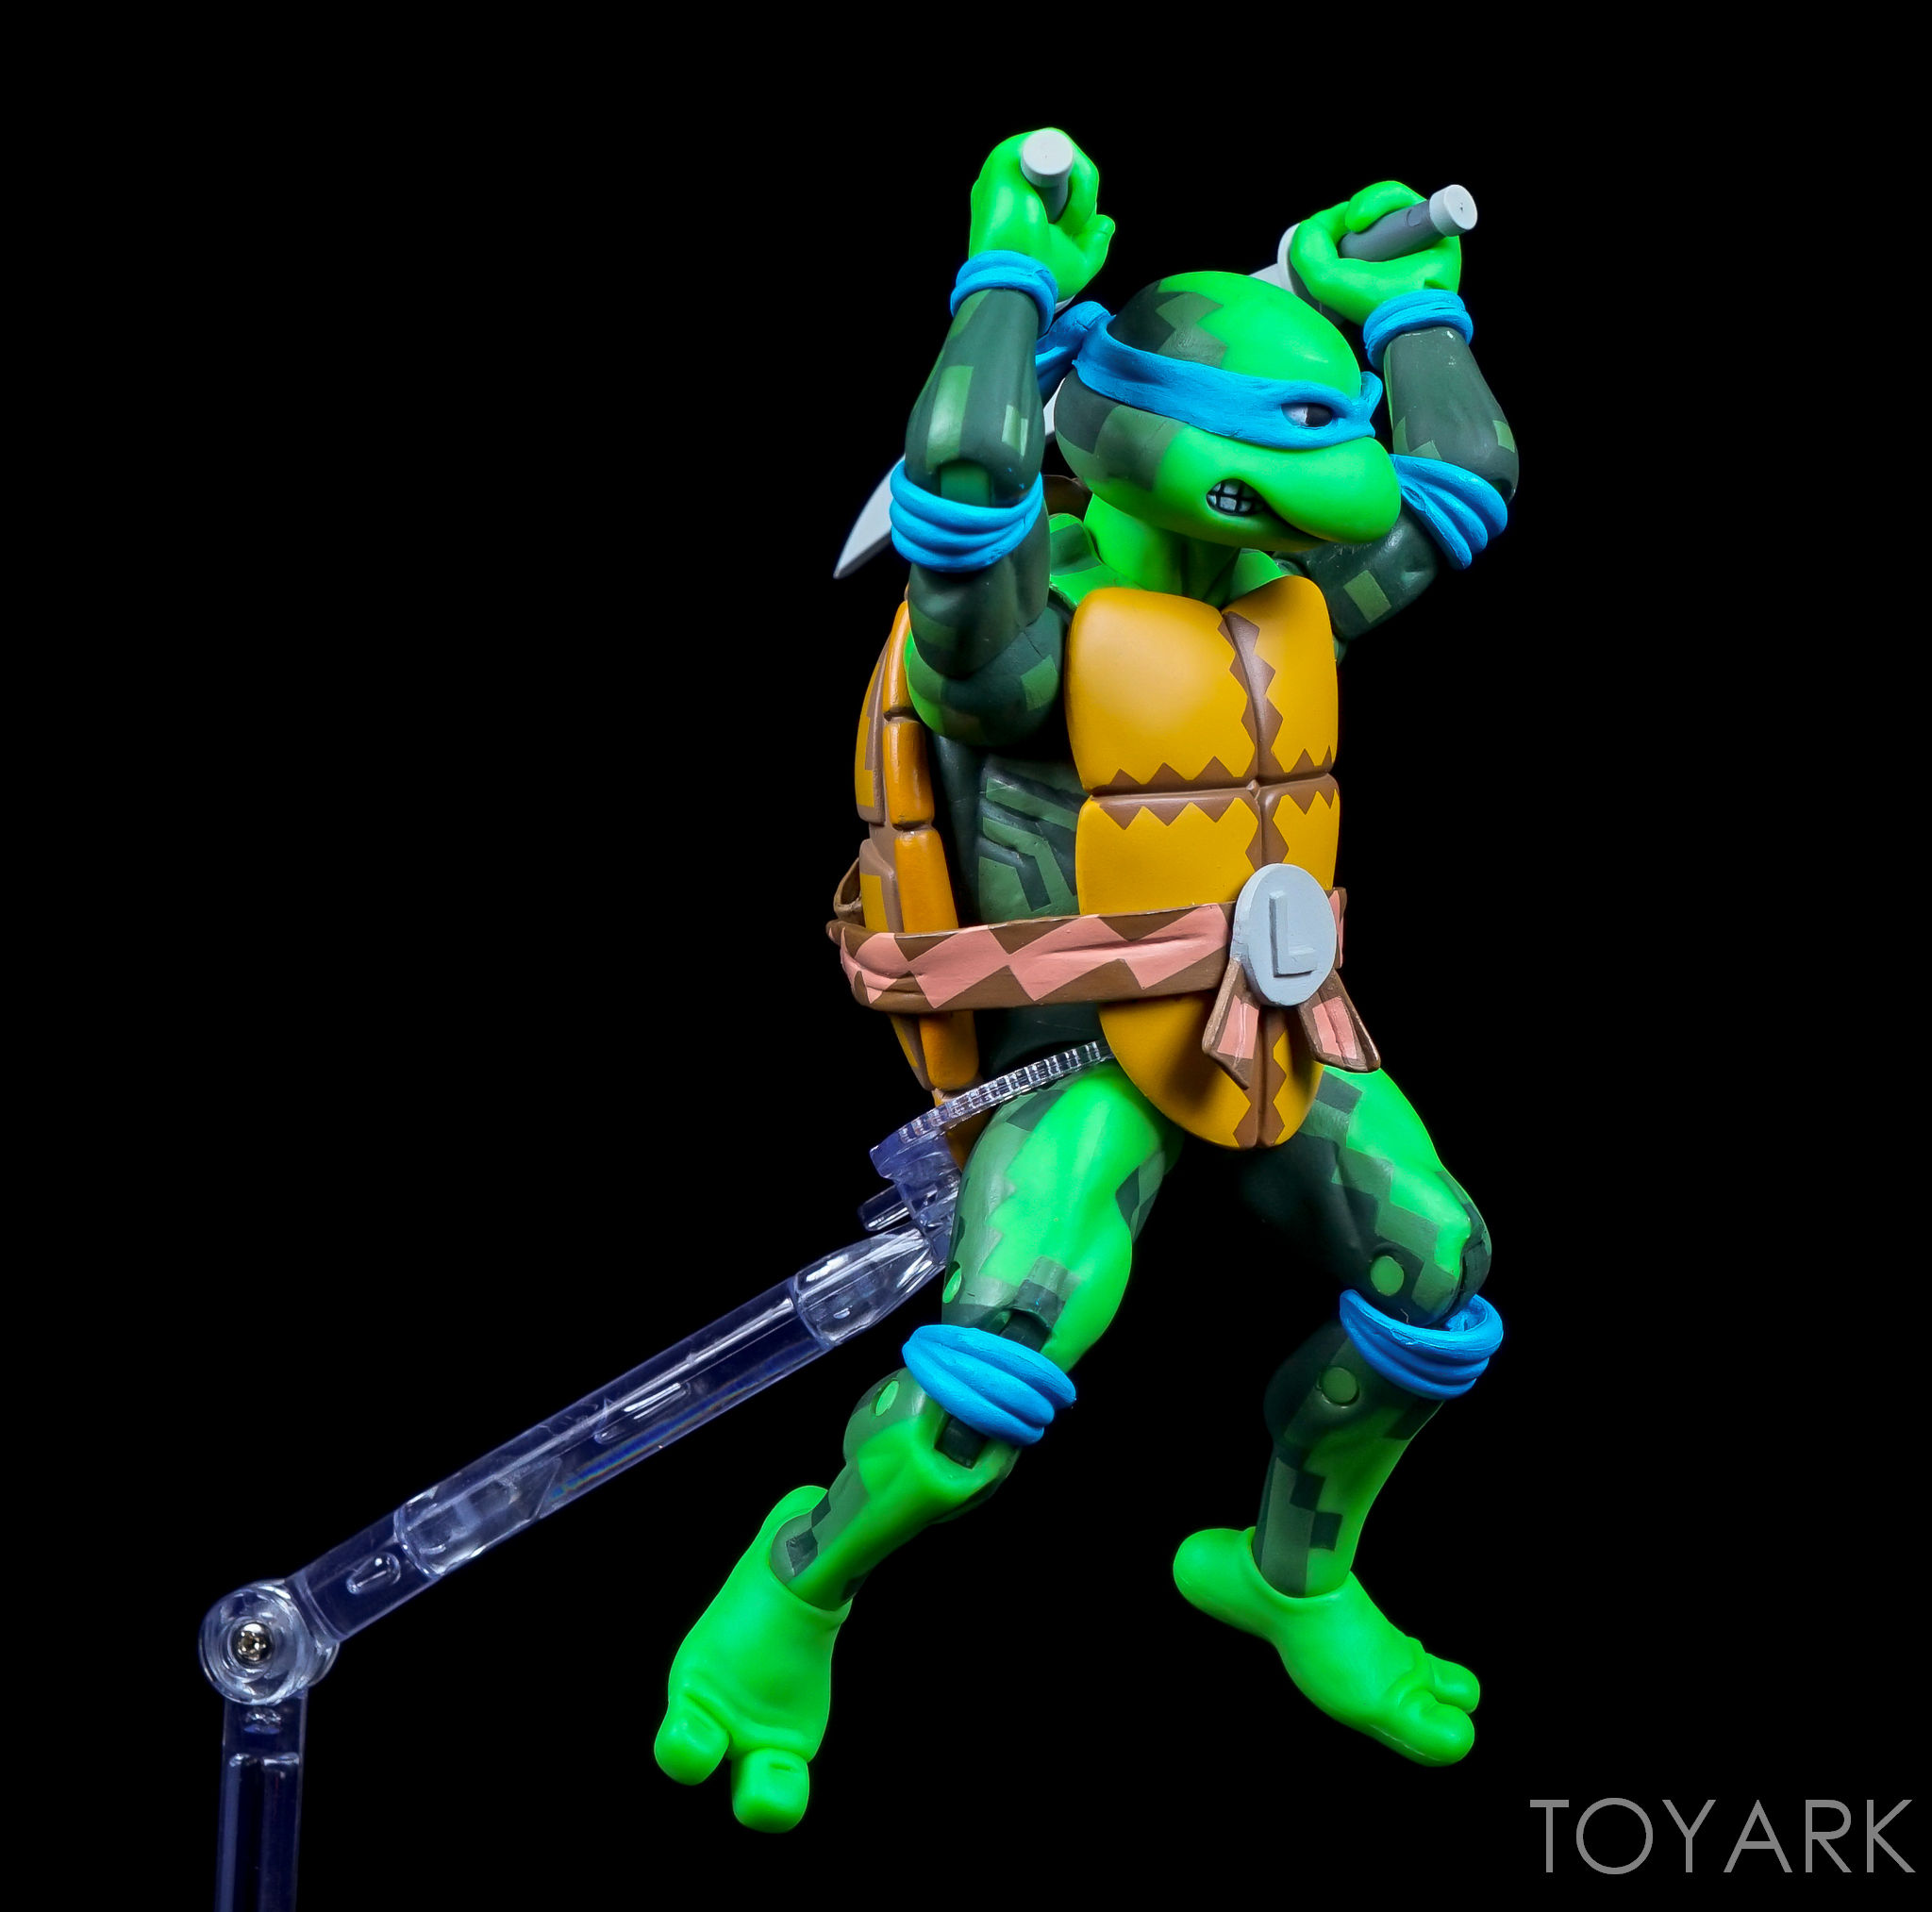 http://news.toyark.com/wp-content/uploads/sites/4/2016/09/Dynamic-Figure-Stand-NECA-025.jpg